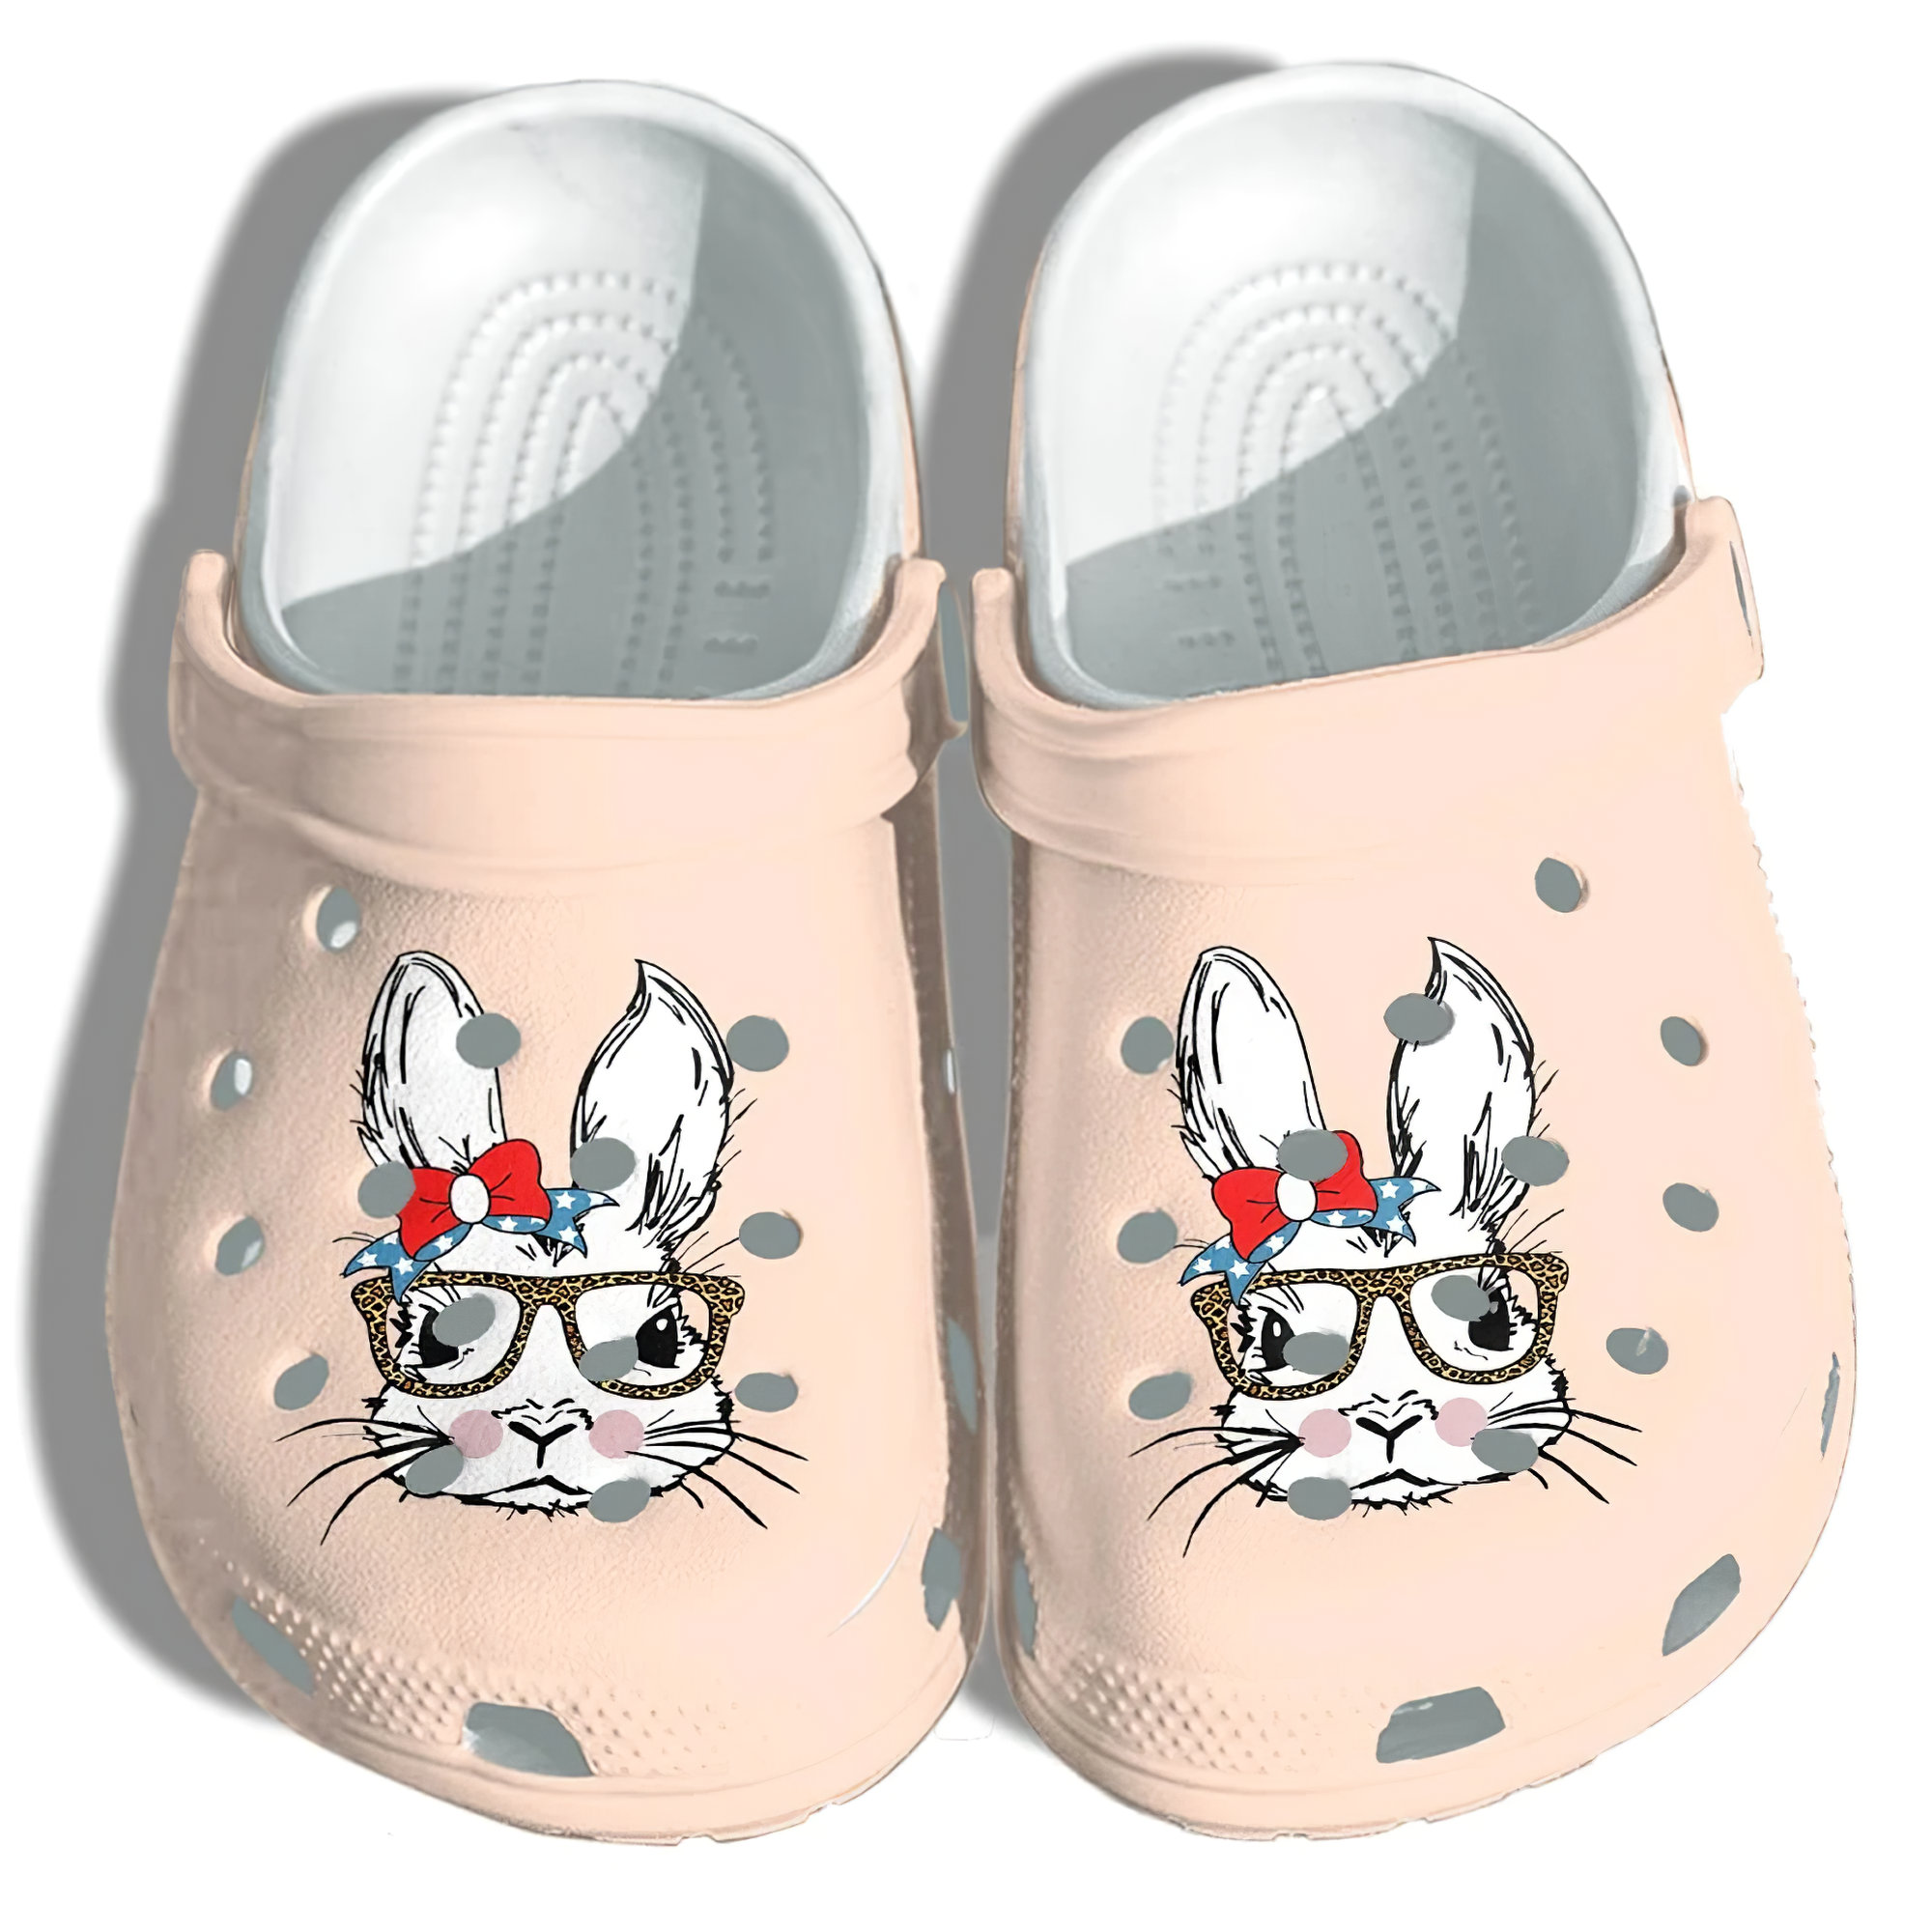 Rabbit Bunny Crocs Clog Shoes